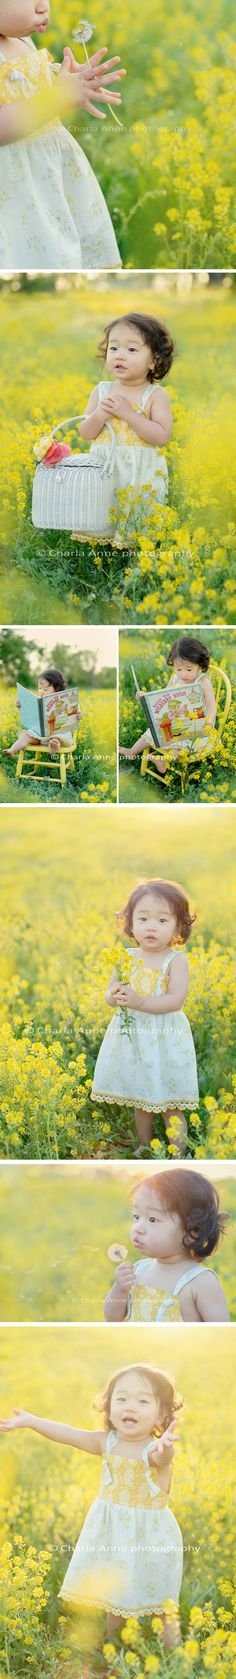 Explore Outdoor Toddler Photography And More